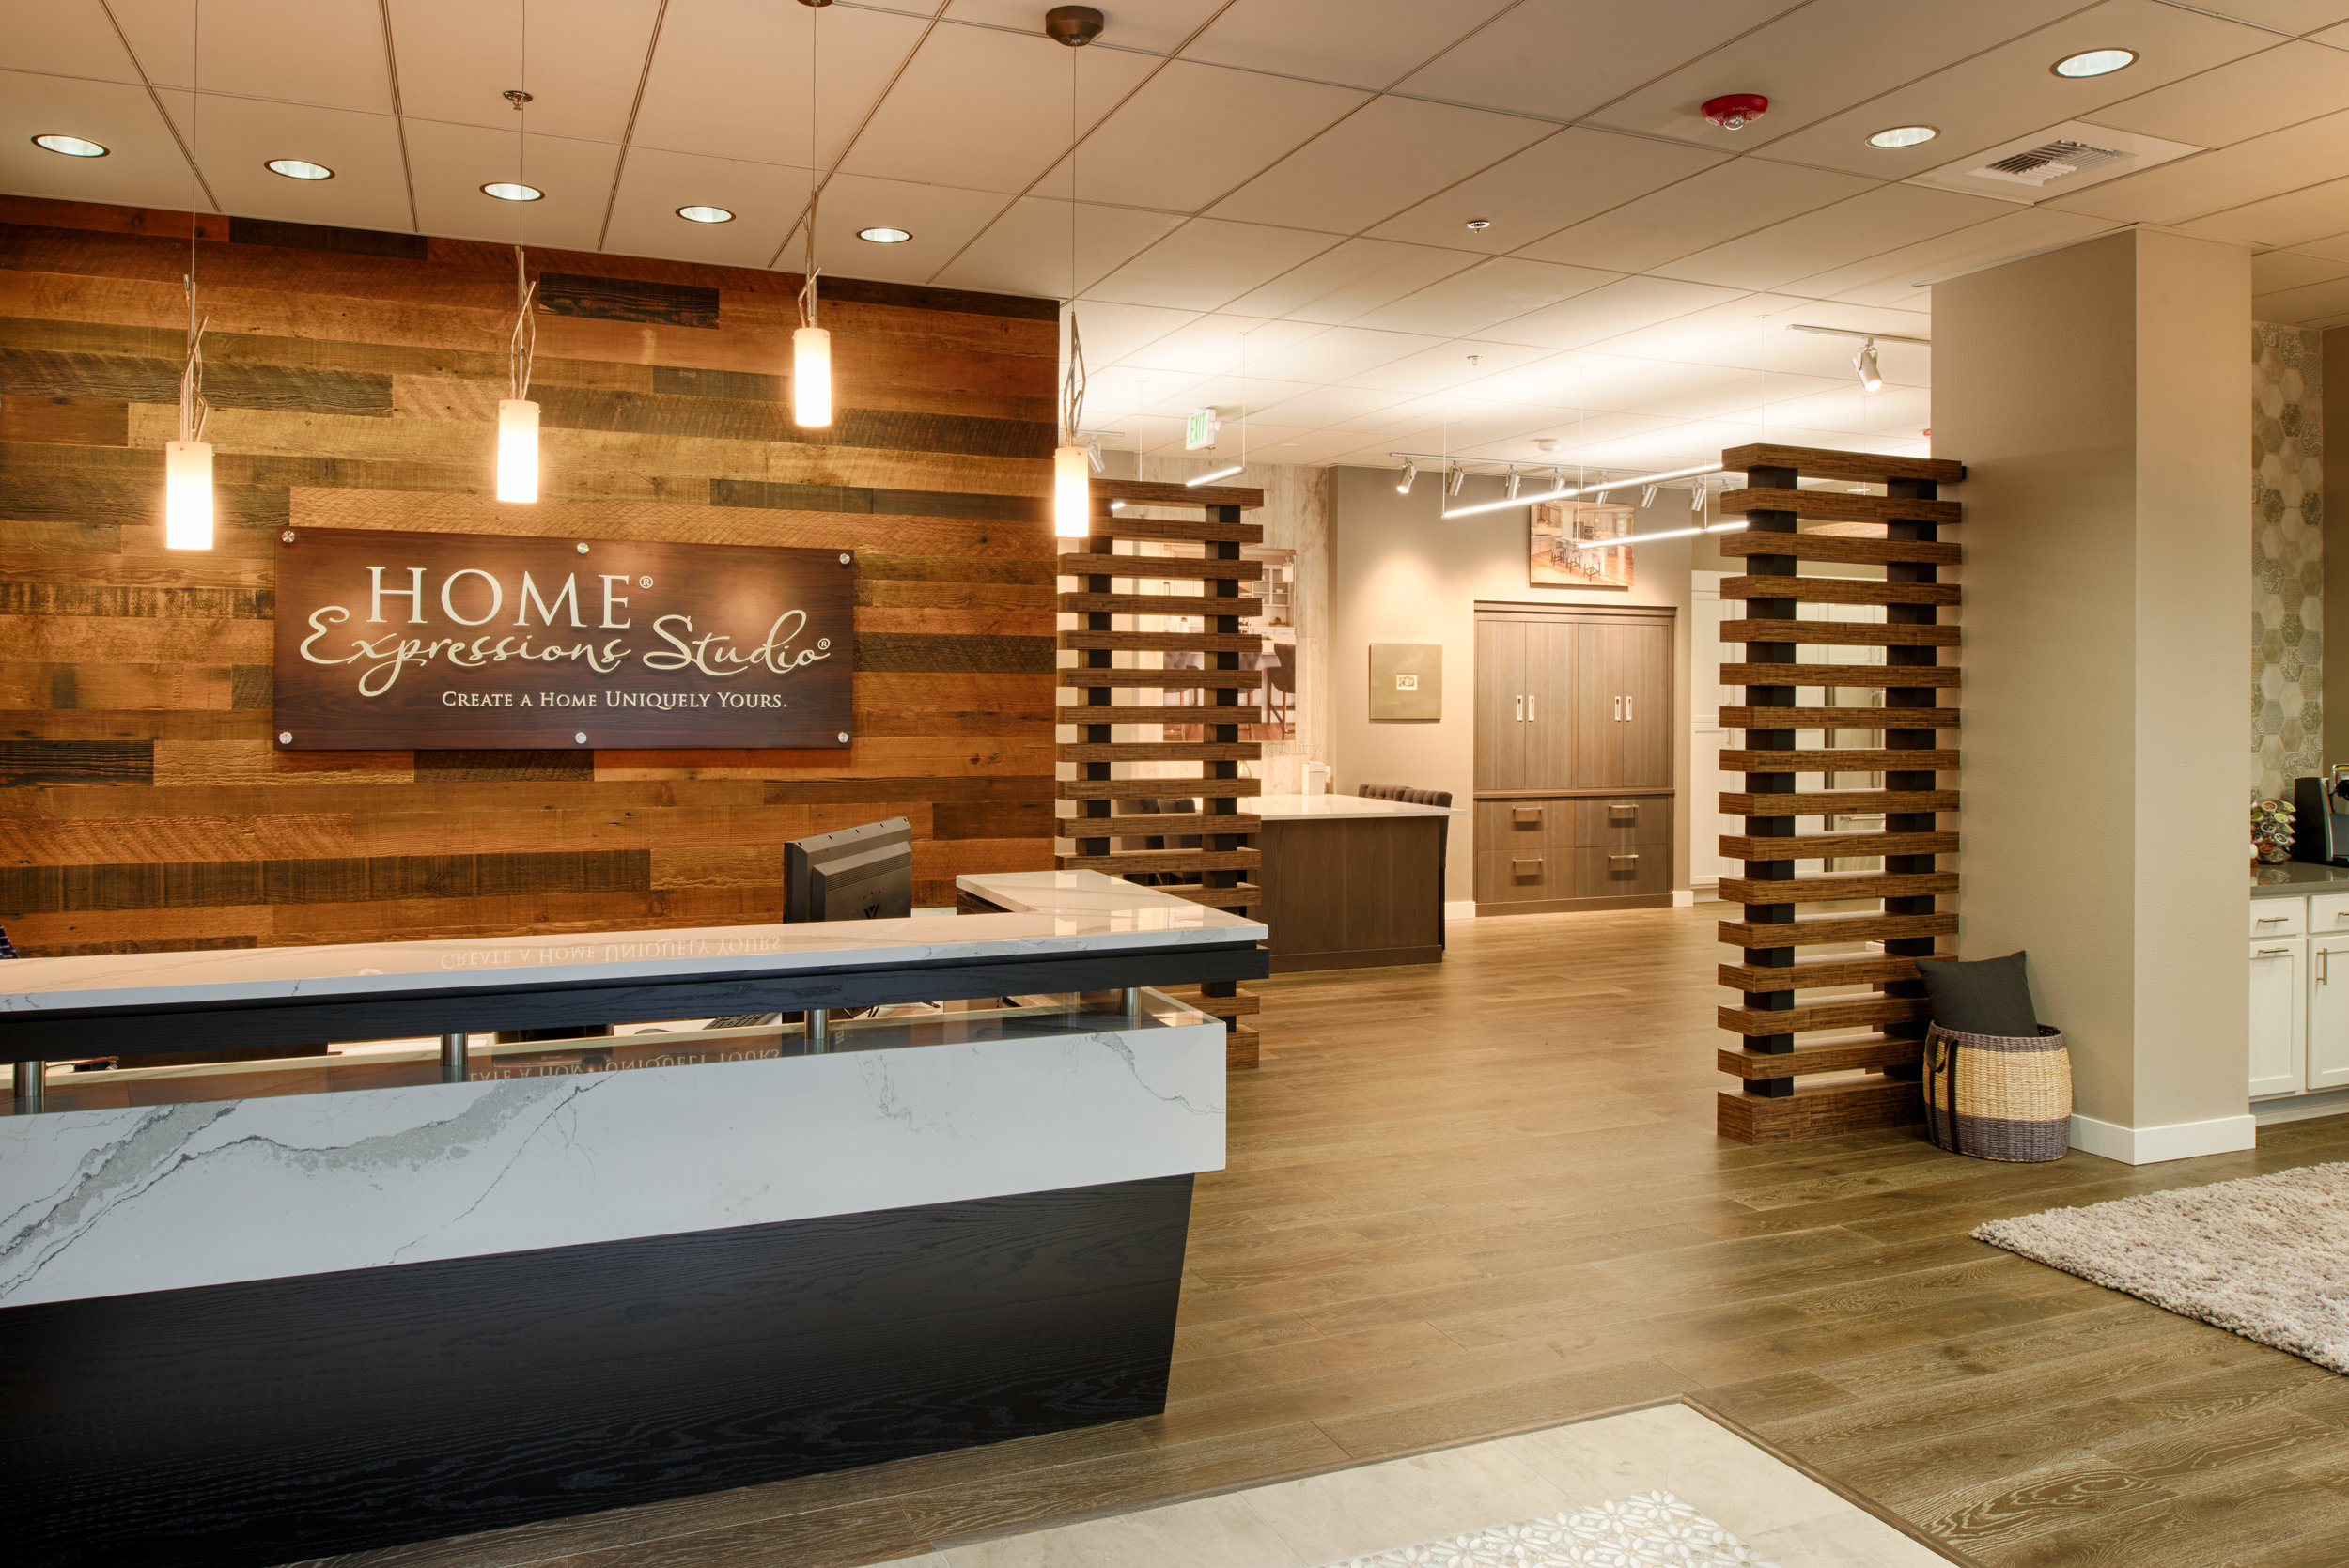 The Expressions Gallery is a 4,200 retail showroom for Pulte Homes, one of the largest home builders in the Pacific Northwest. This tenant improvement creates a warm, contemporary and flexible space where customers work with designers to select finishes and other options for their future homes